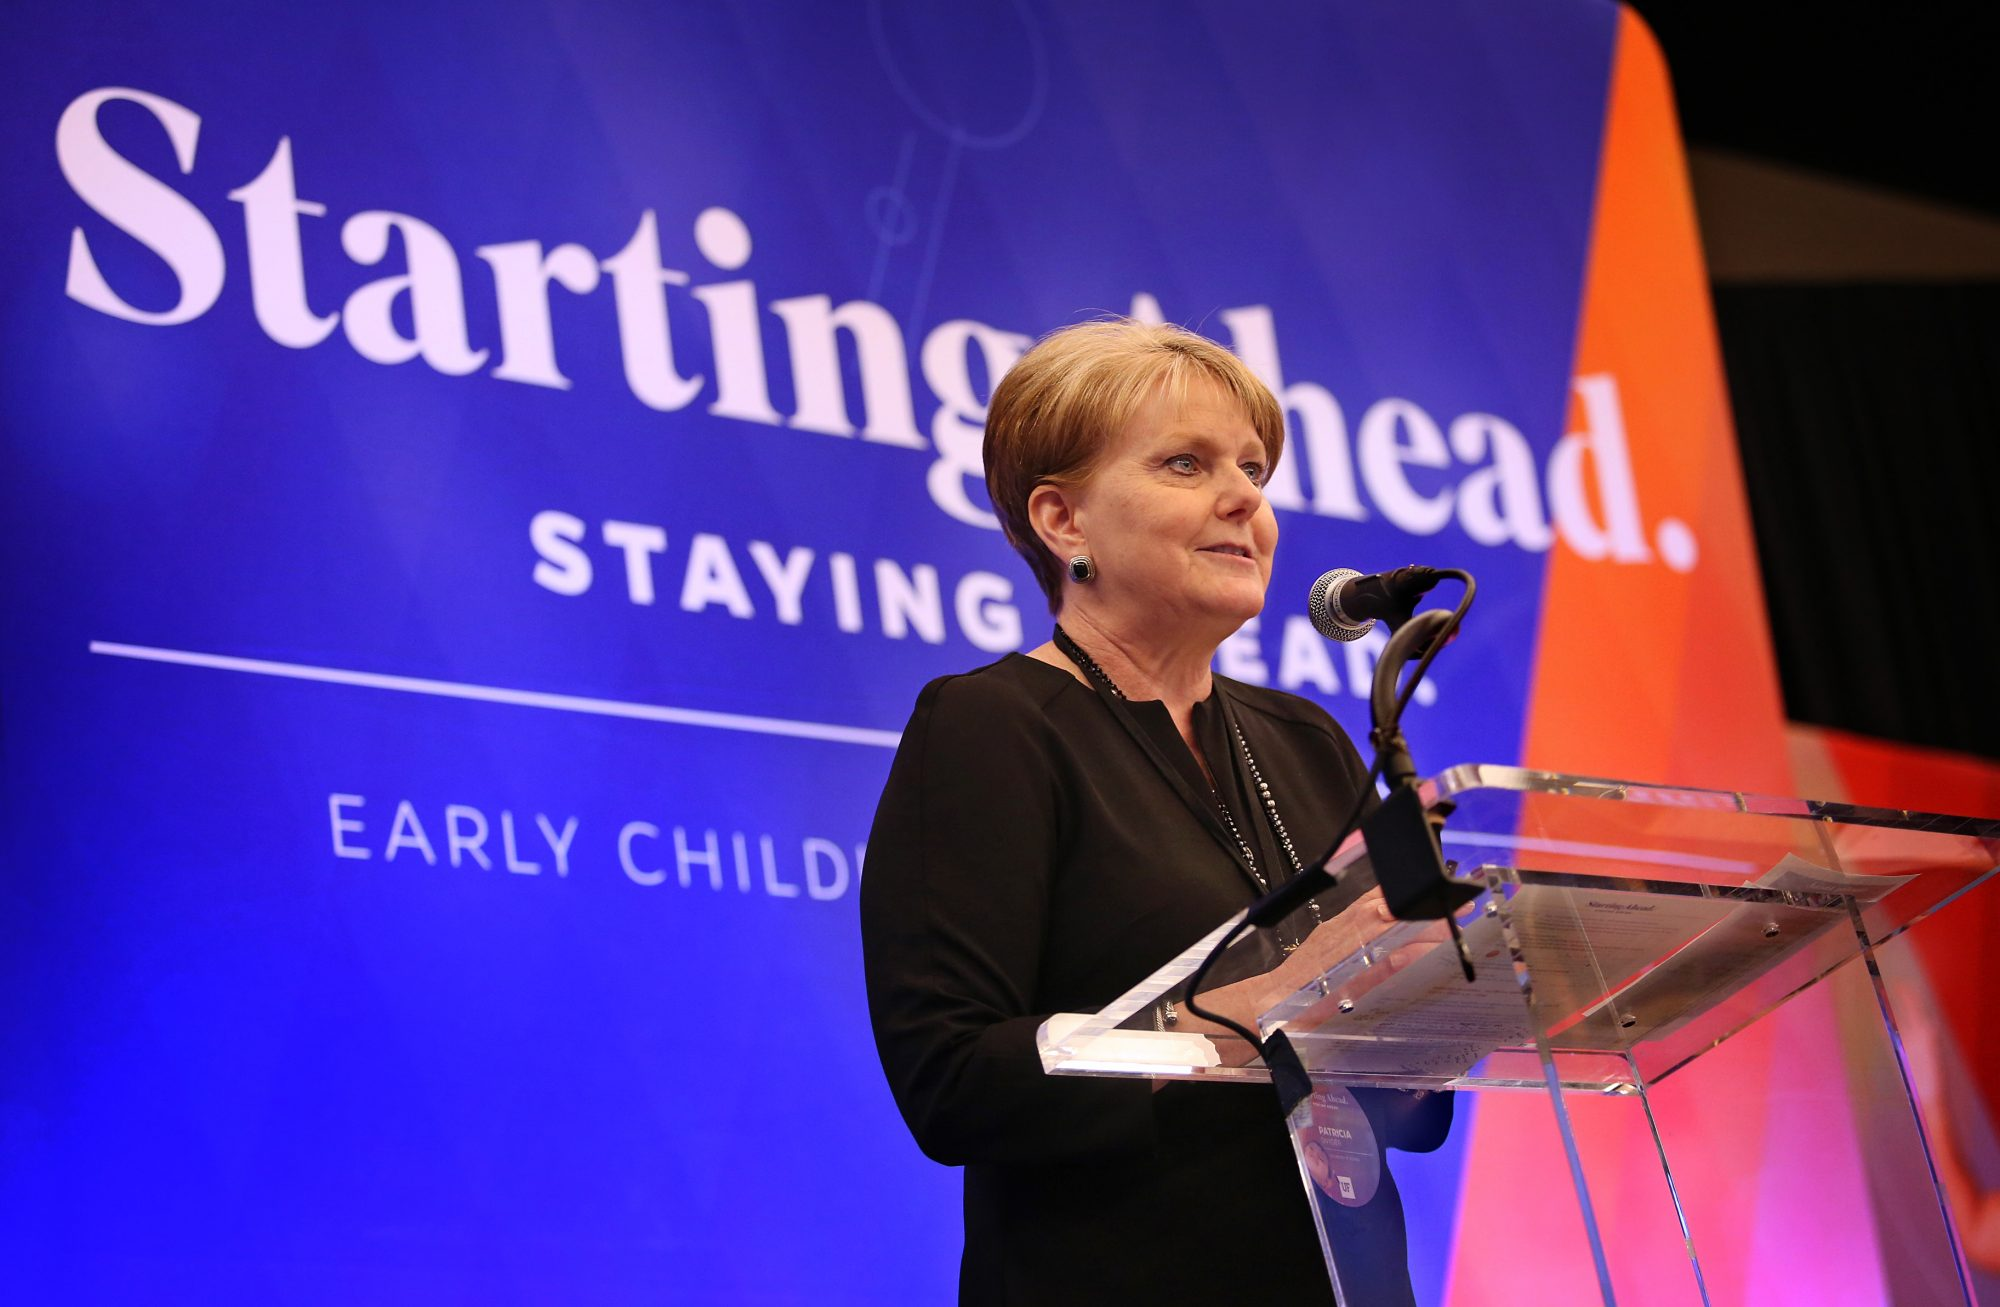 Patricia Snyder Ph.D. giving a speech at the Early Childhood National Summit